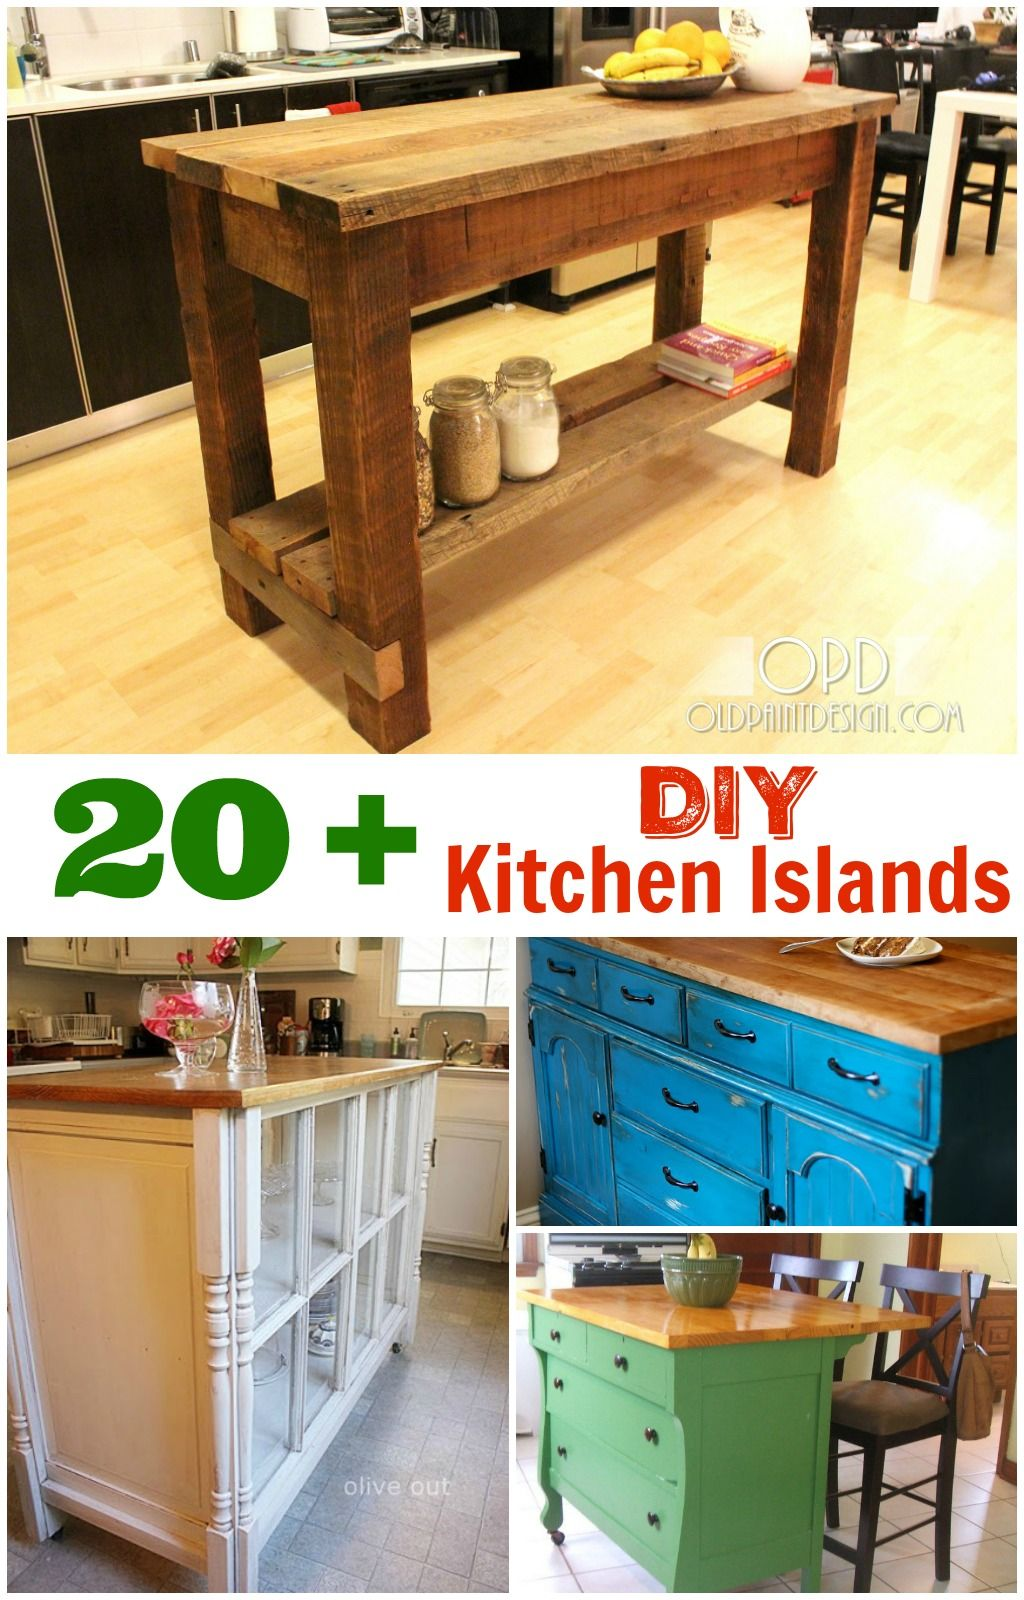 diy kitchen islands these kitchen island diy projects are. Black Bedroom Furniture Sets. Home Design Ideas